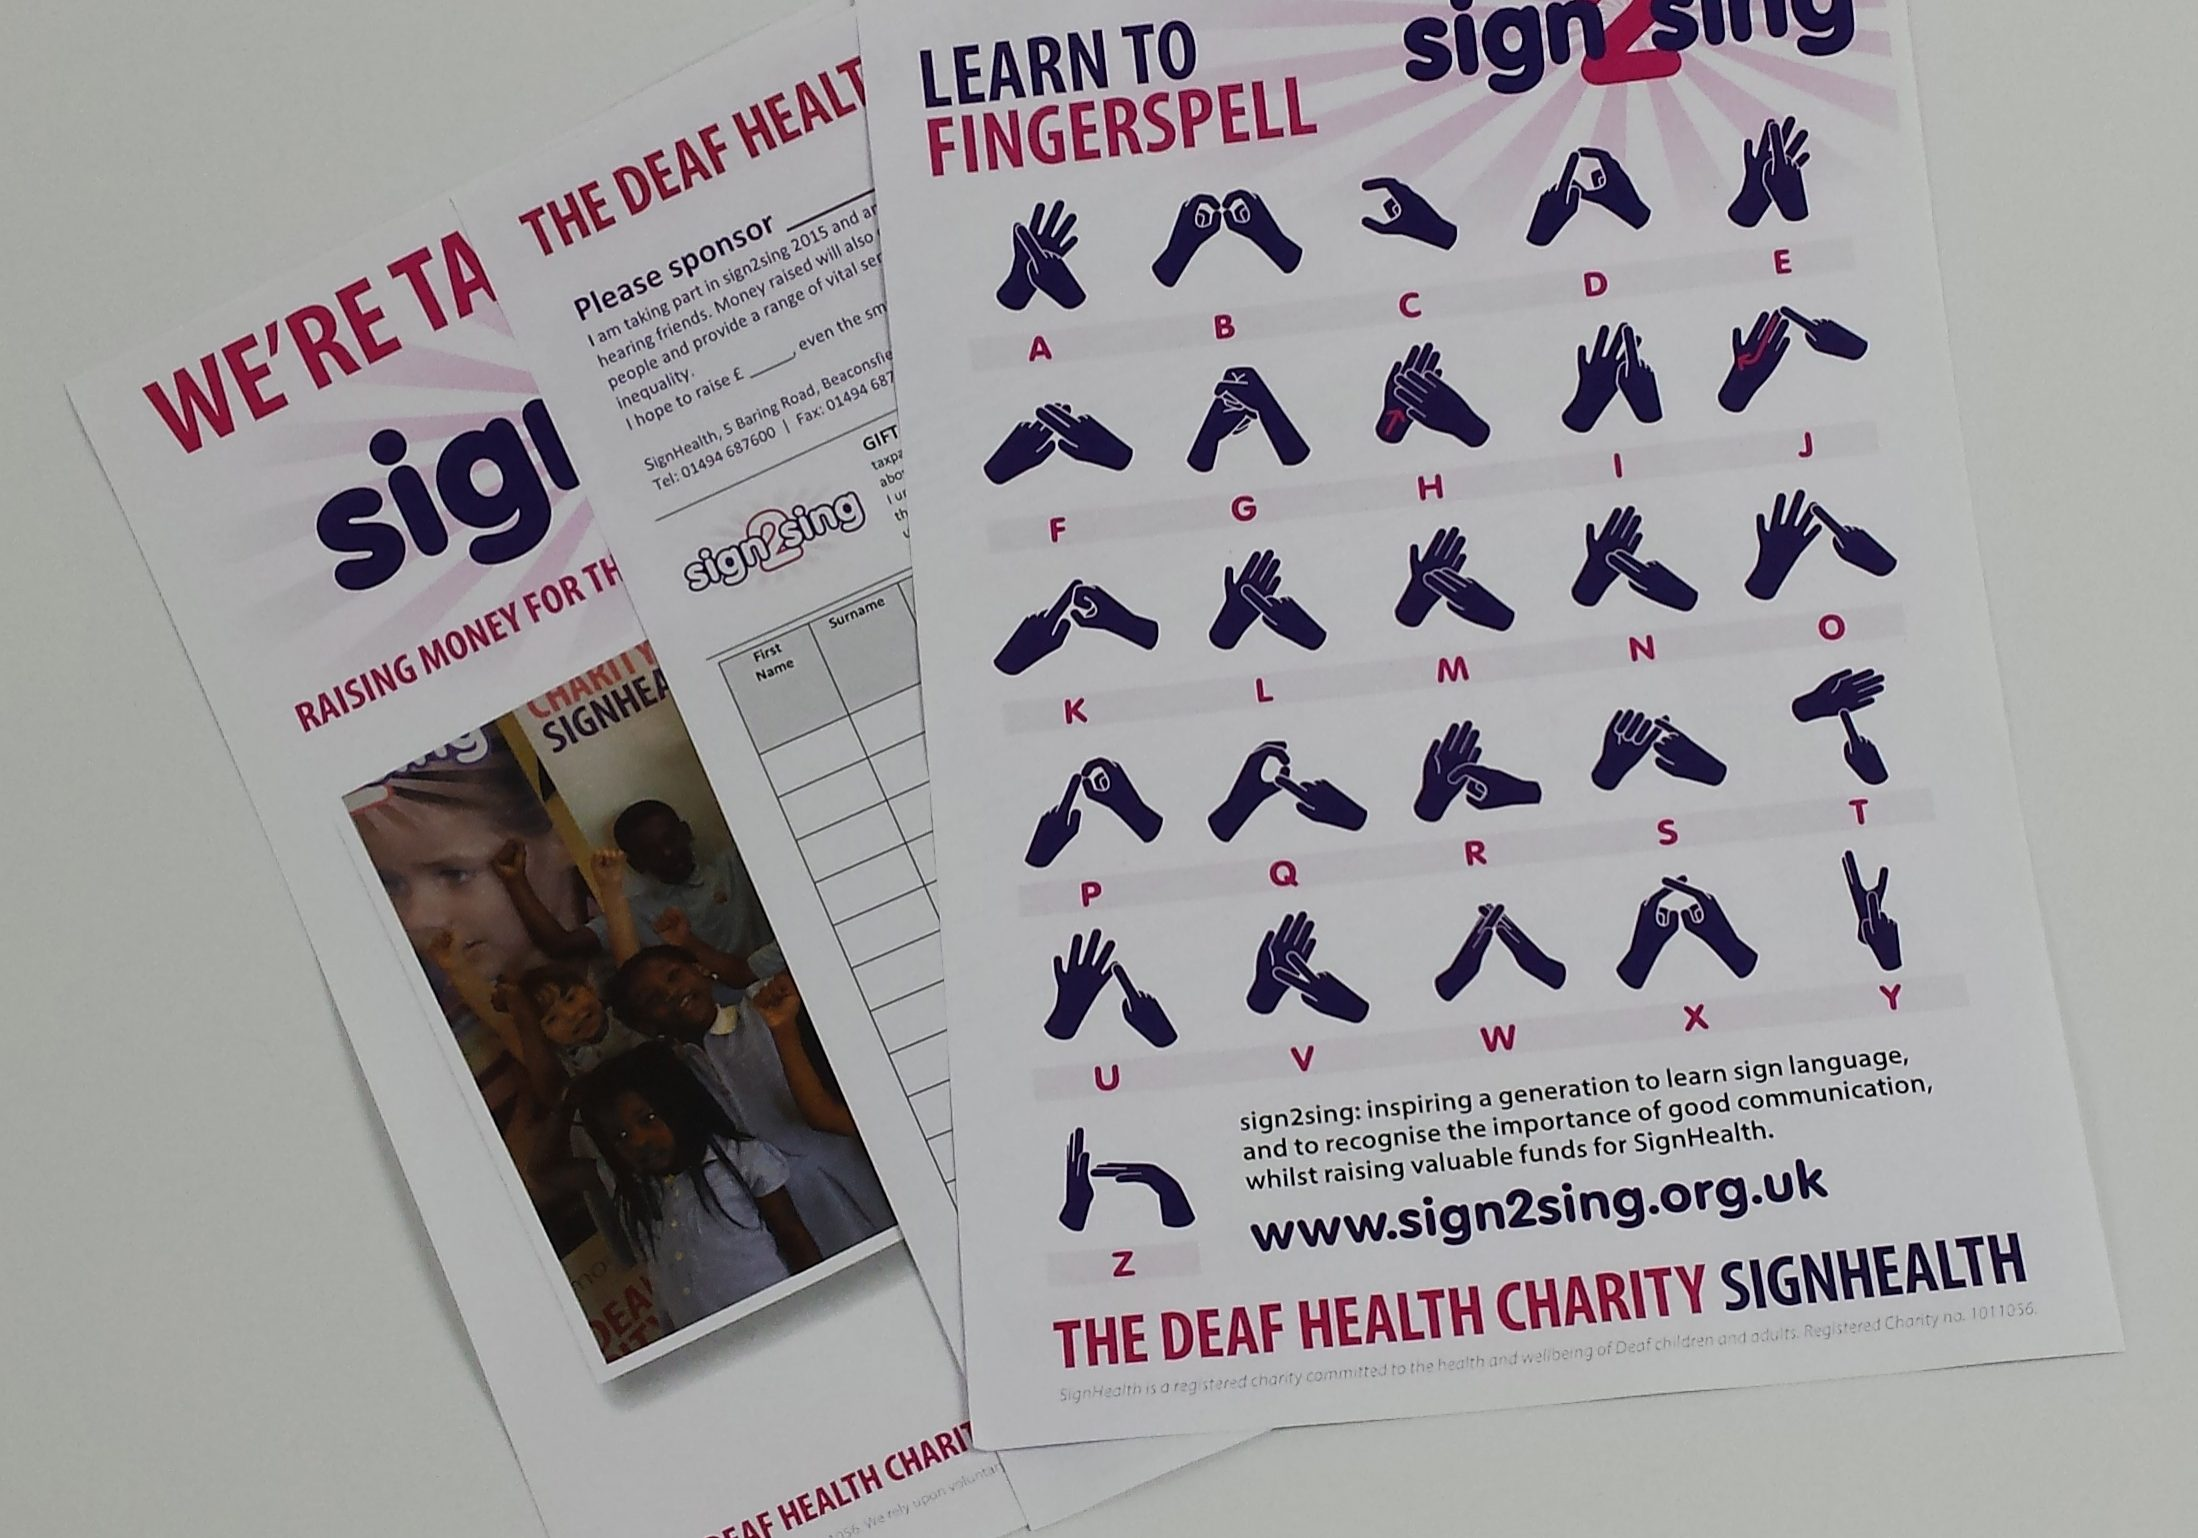 Sign2Sing sponsor, signing and fundraising resources.